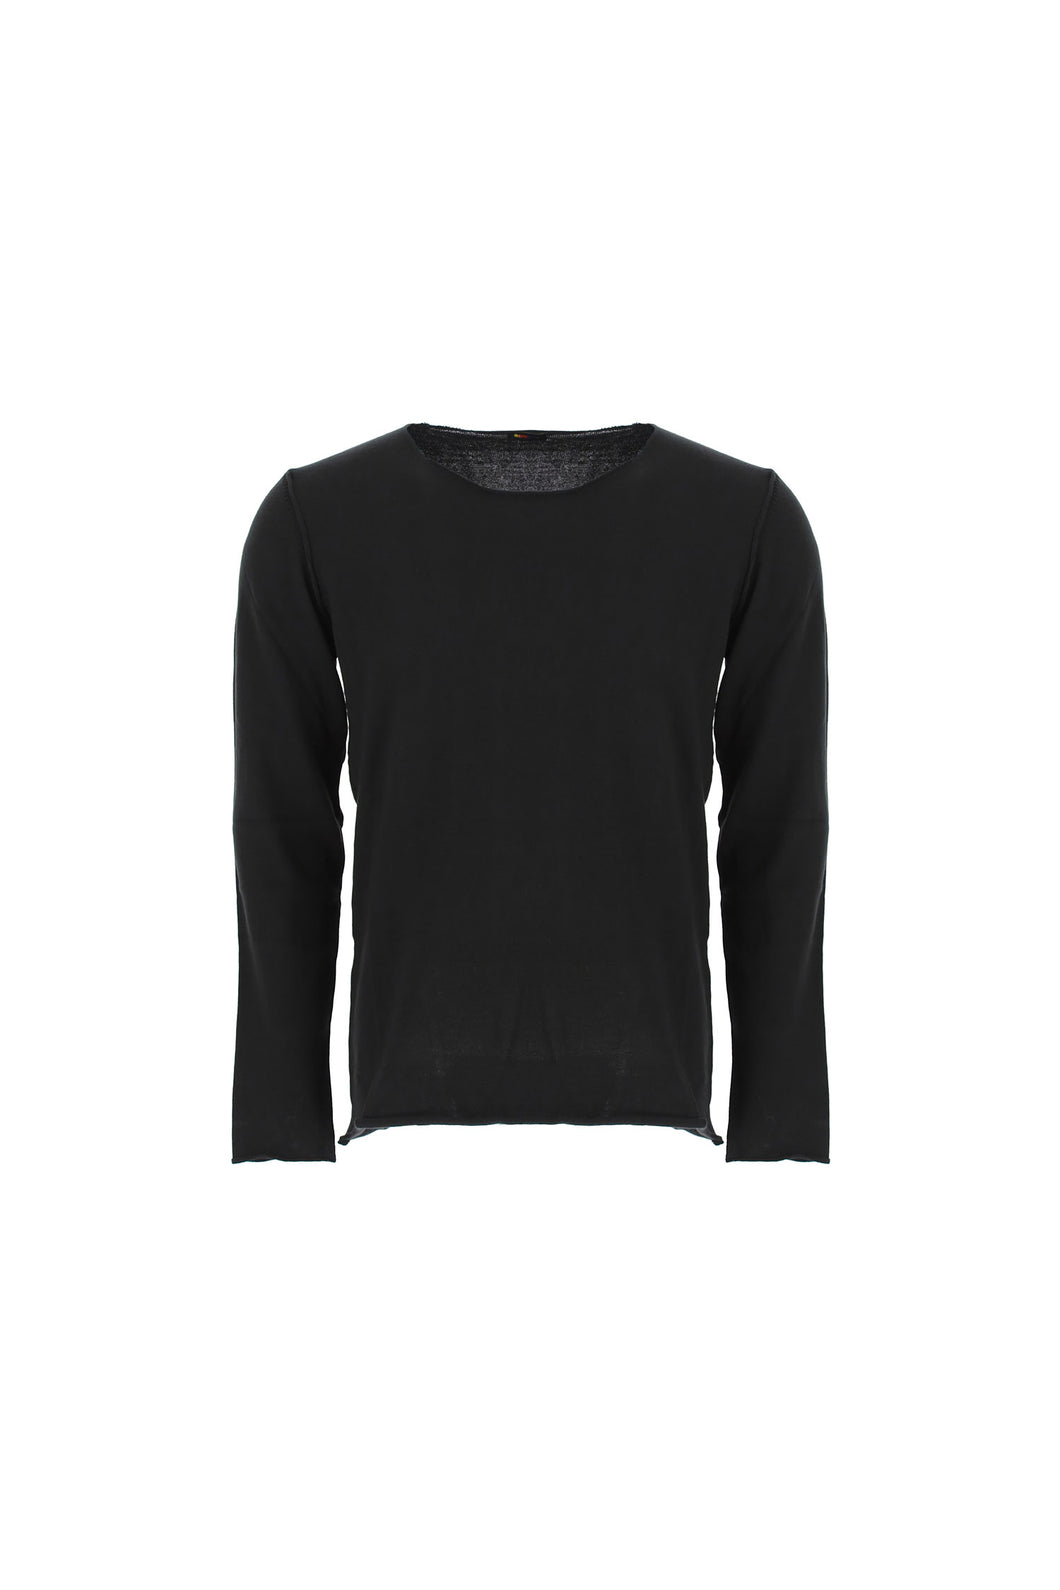 PULL FIN A COL ROND - IMPERIAL (3 couleurs dispo)